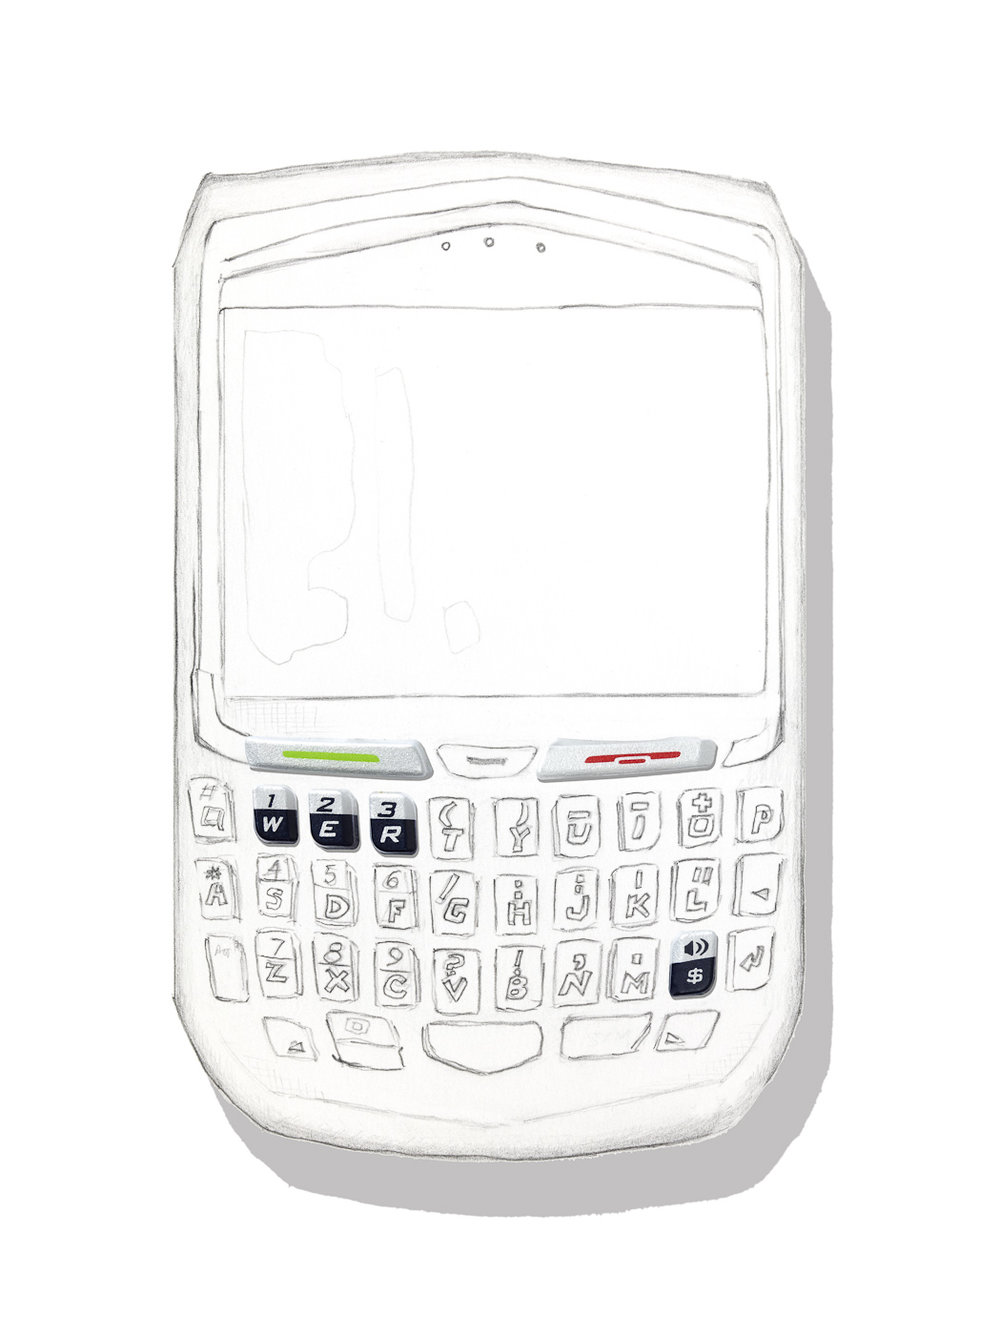 Blackberry-095.jpg